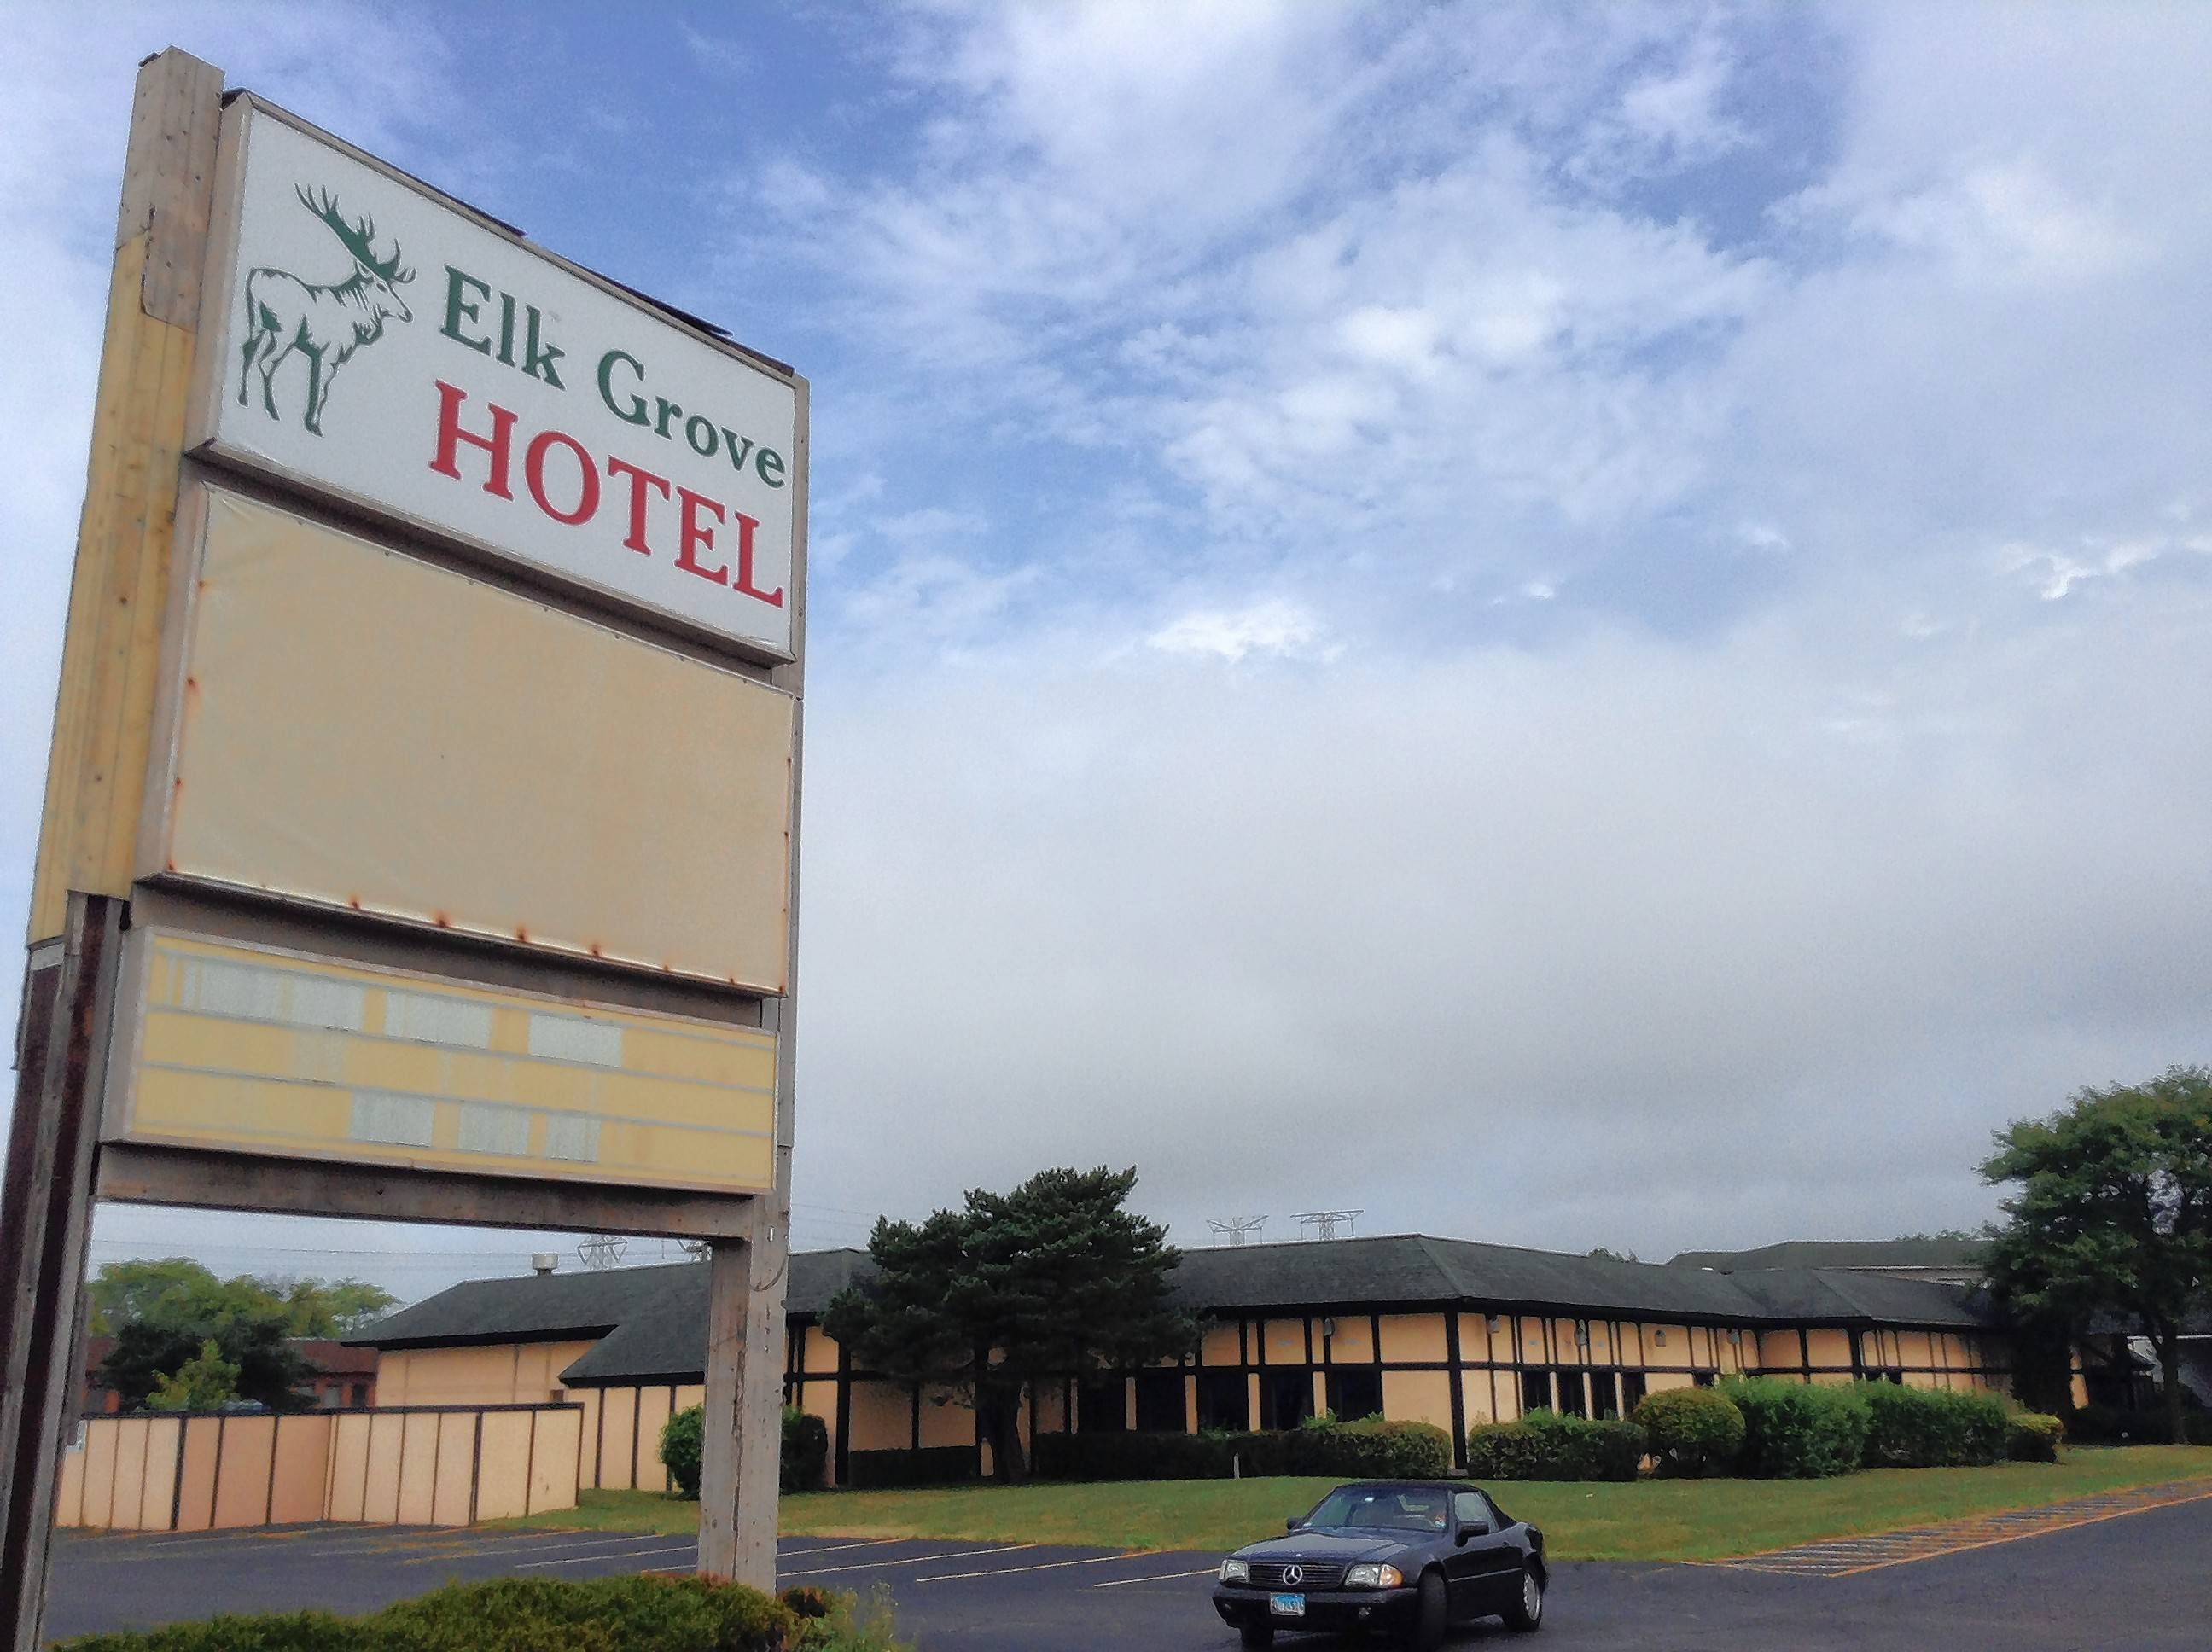 The shuttered Elk Grove Hotel at 1600 E. Oakton St. will be demolished and the land primed for future development, according to village officials, who inked a $5.6 million contract for the property.